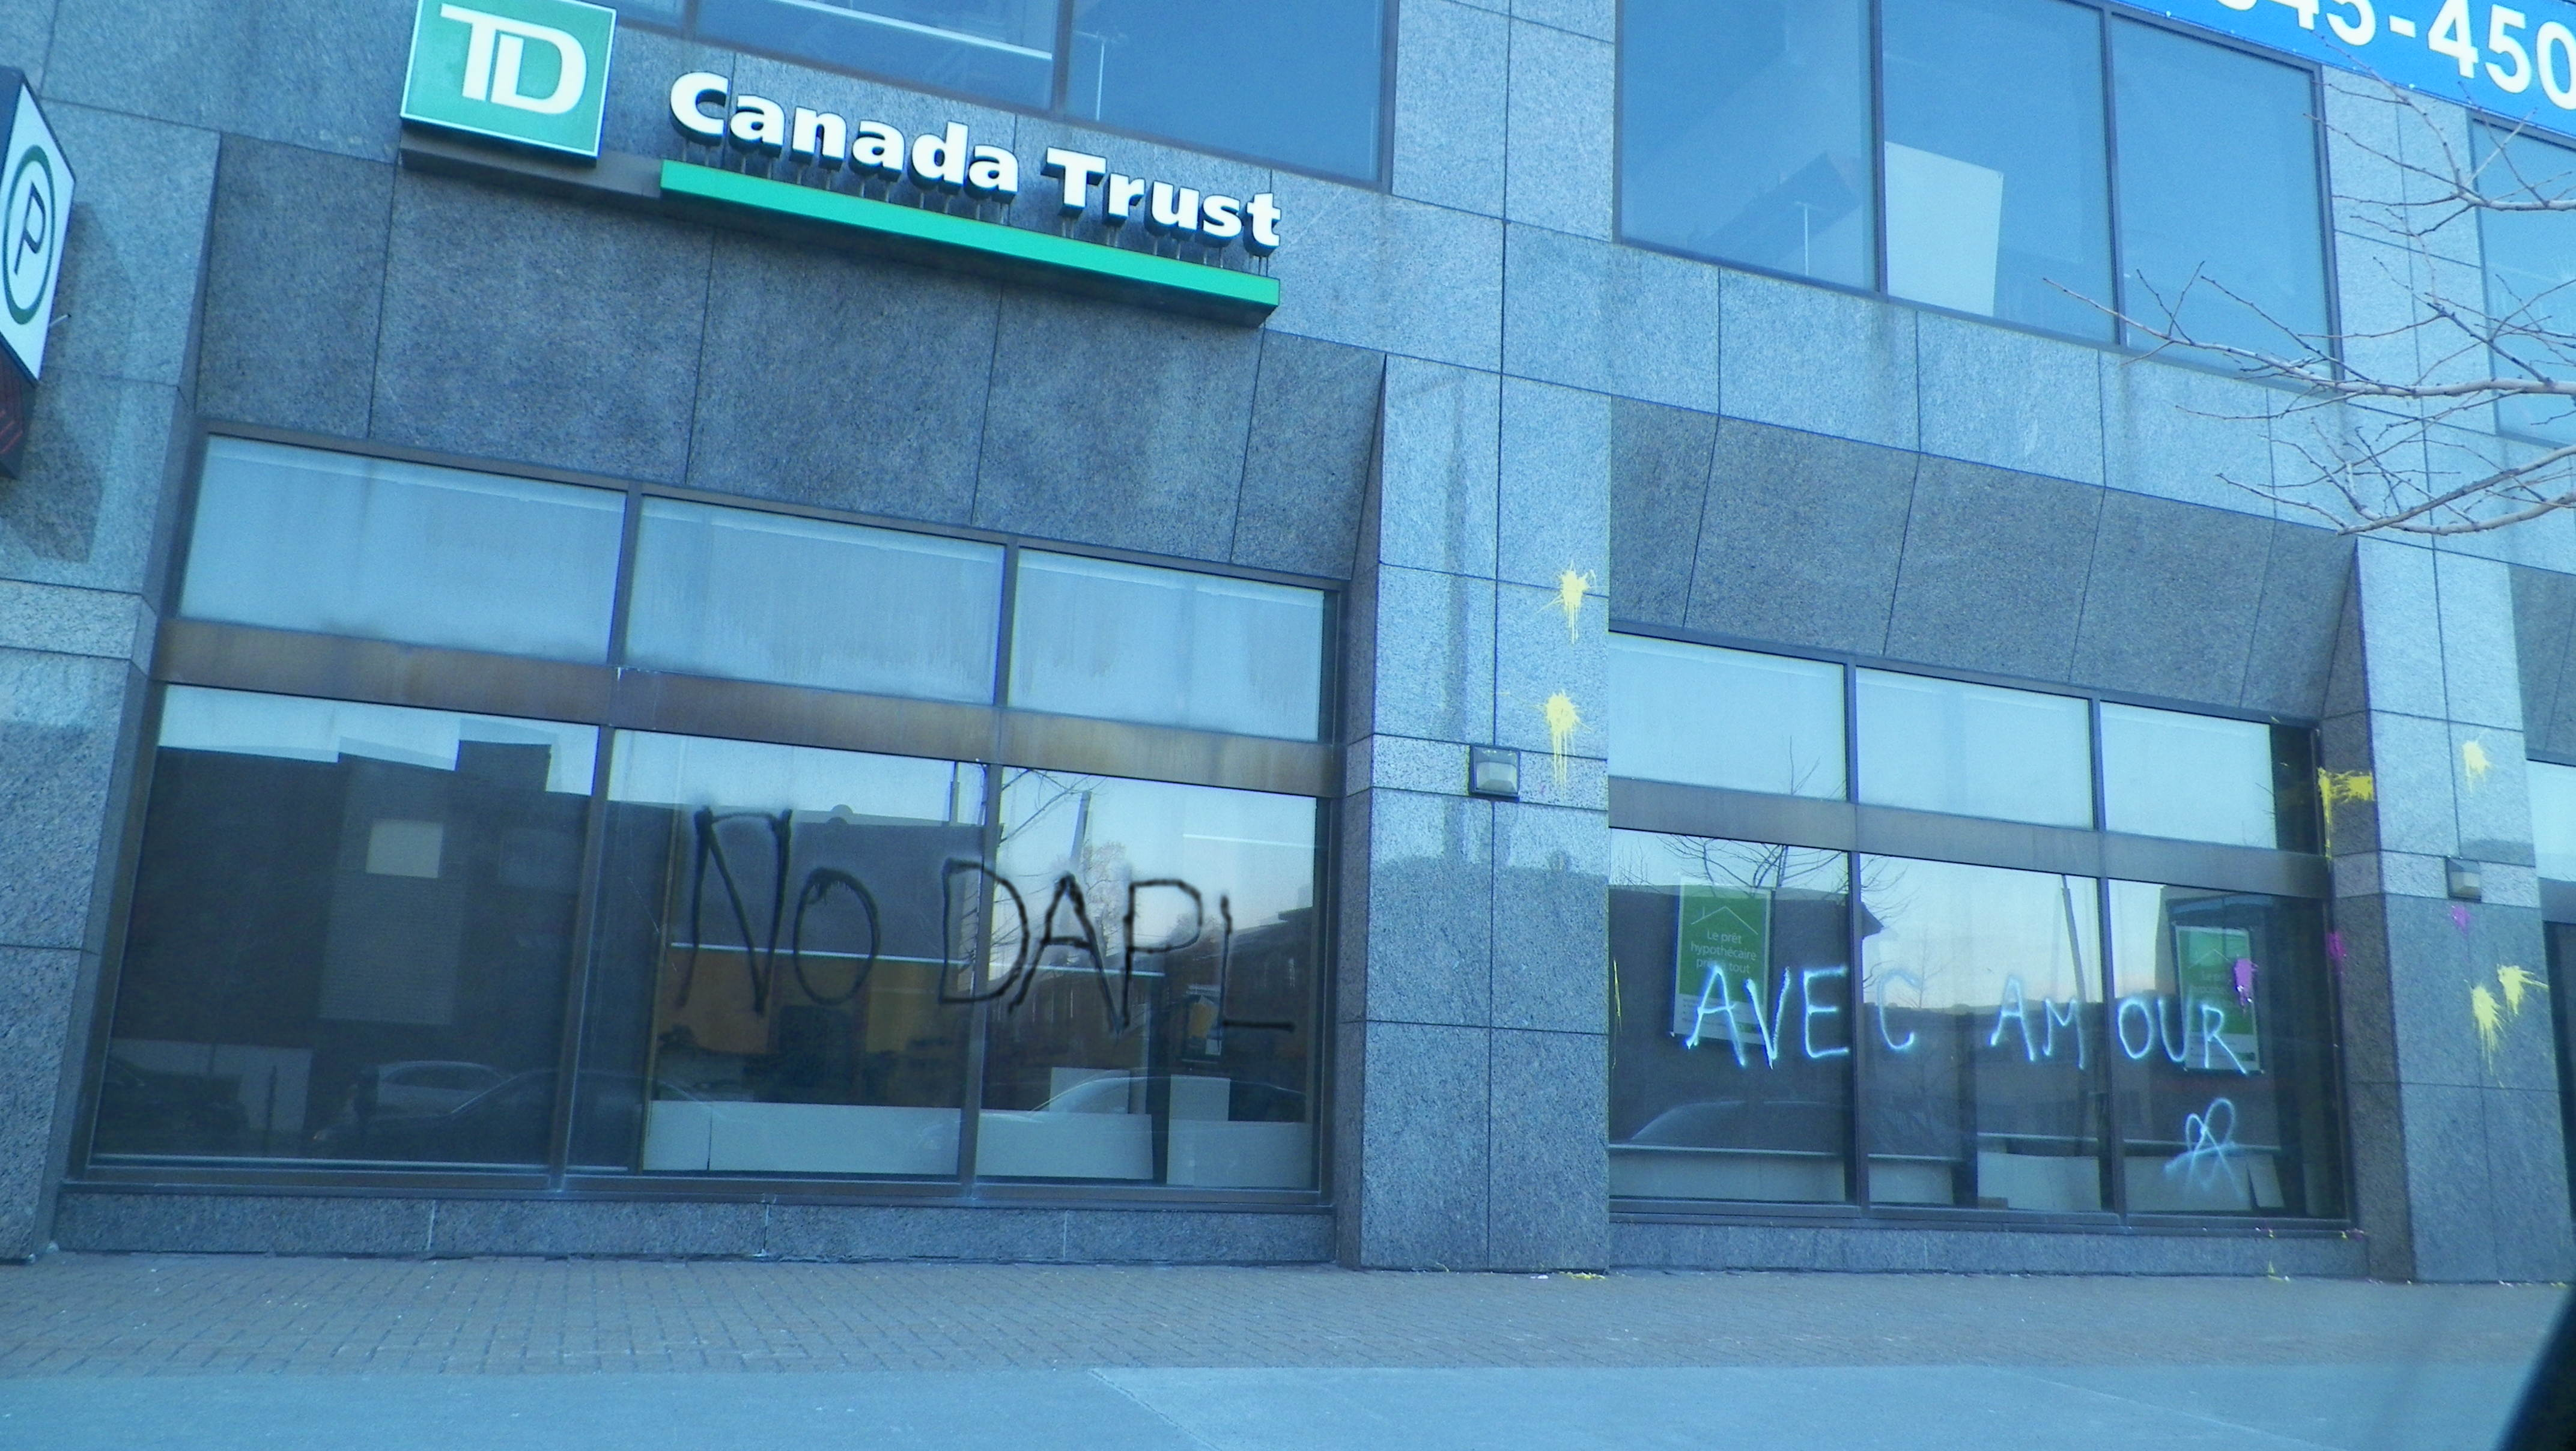 TD bank redecorated in solidarity with Standing Rock - It's Going Down